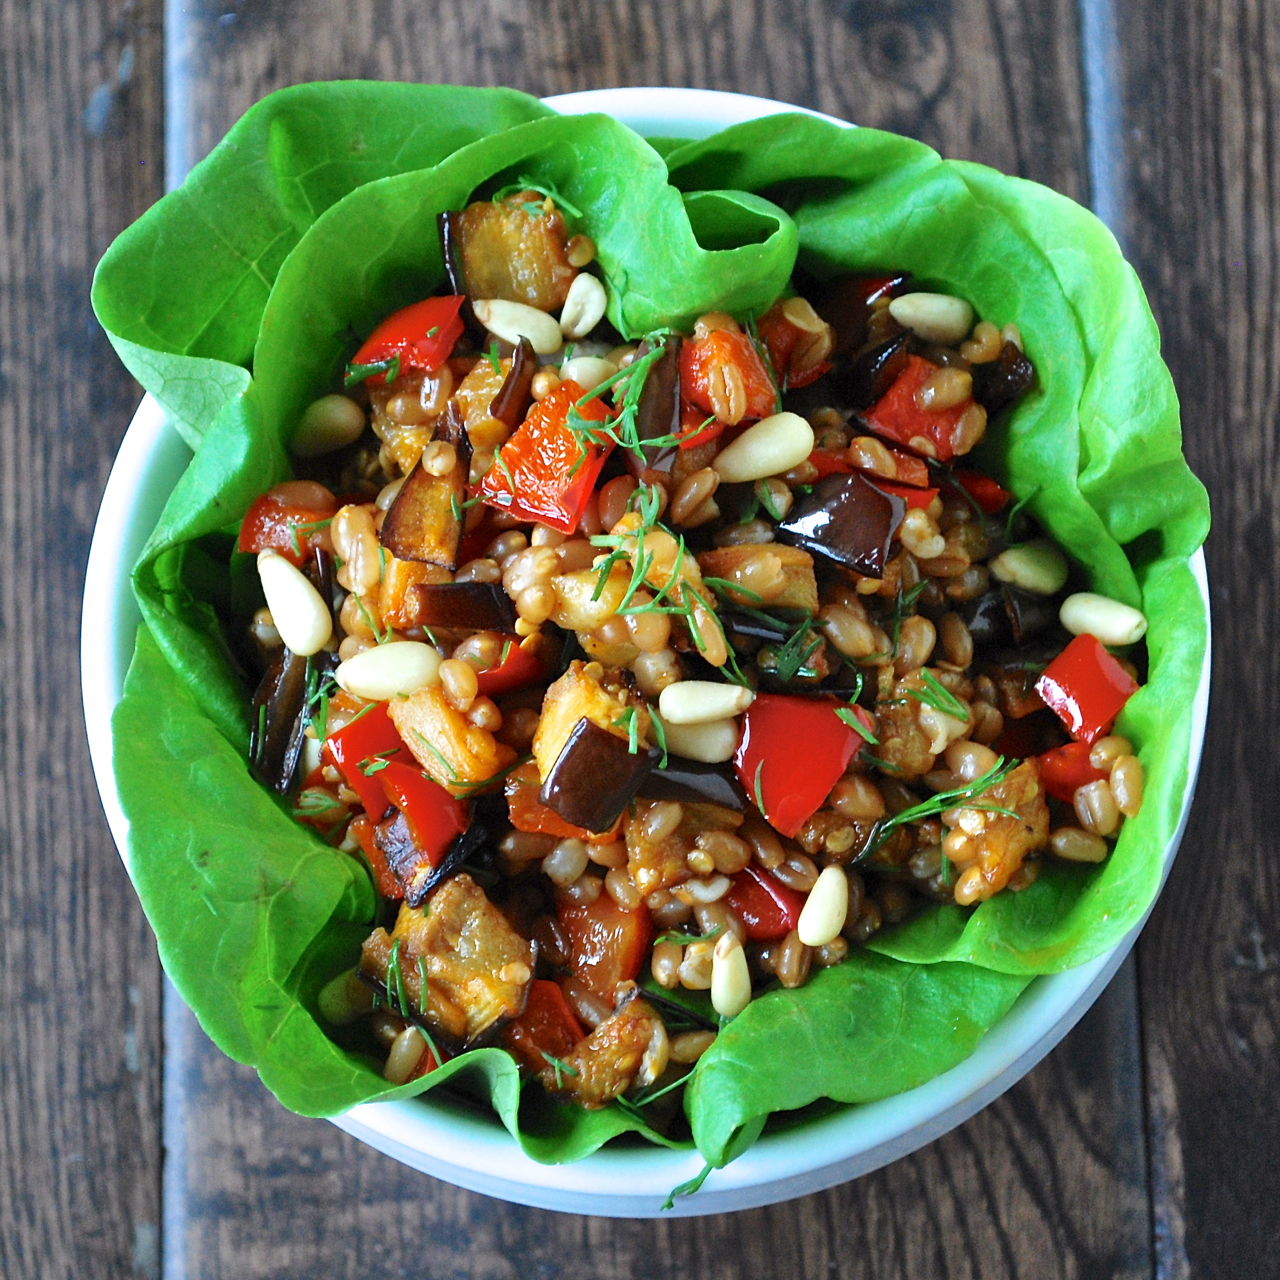 ... Area Personal Chef: tunisian spiced roasted eggplant & pepper salad